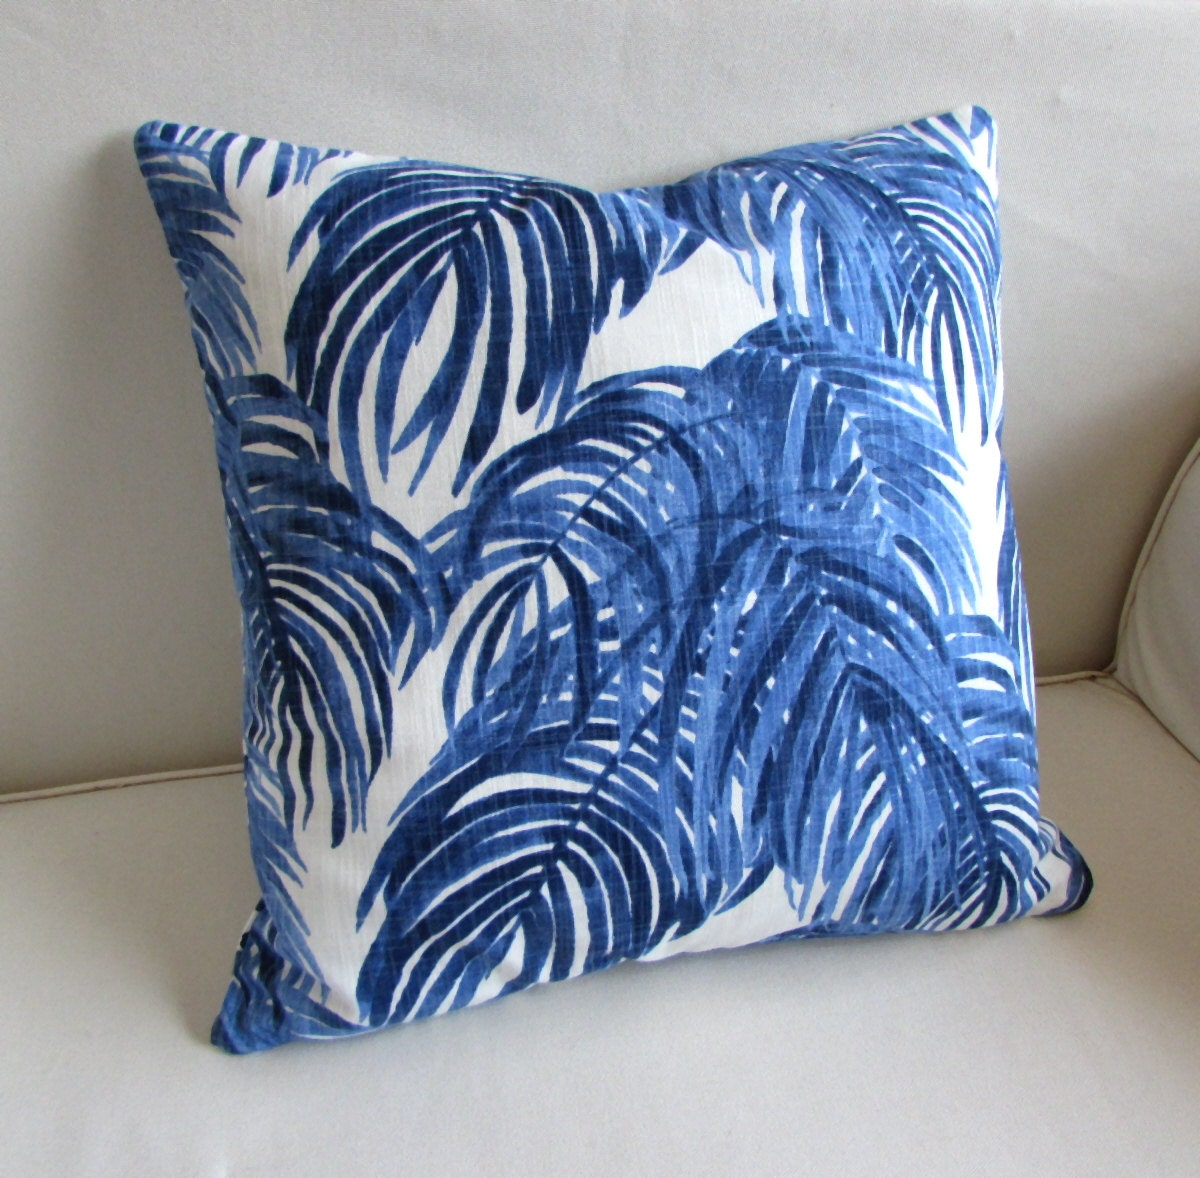 CALICO WEDGEWOOD decorative Pillow cover blue 18x18 20x20